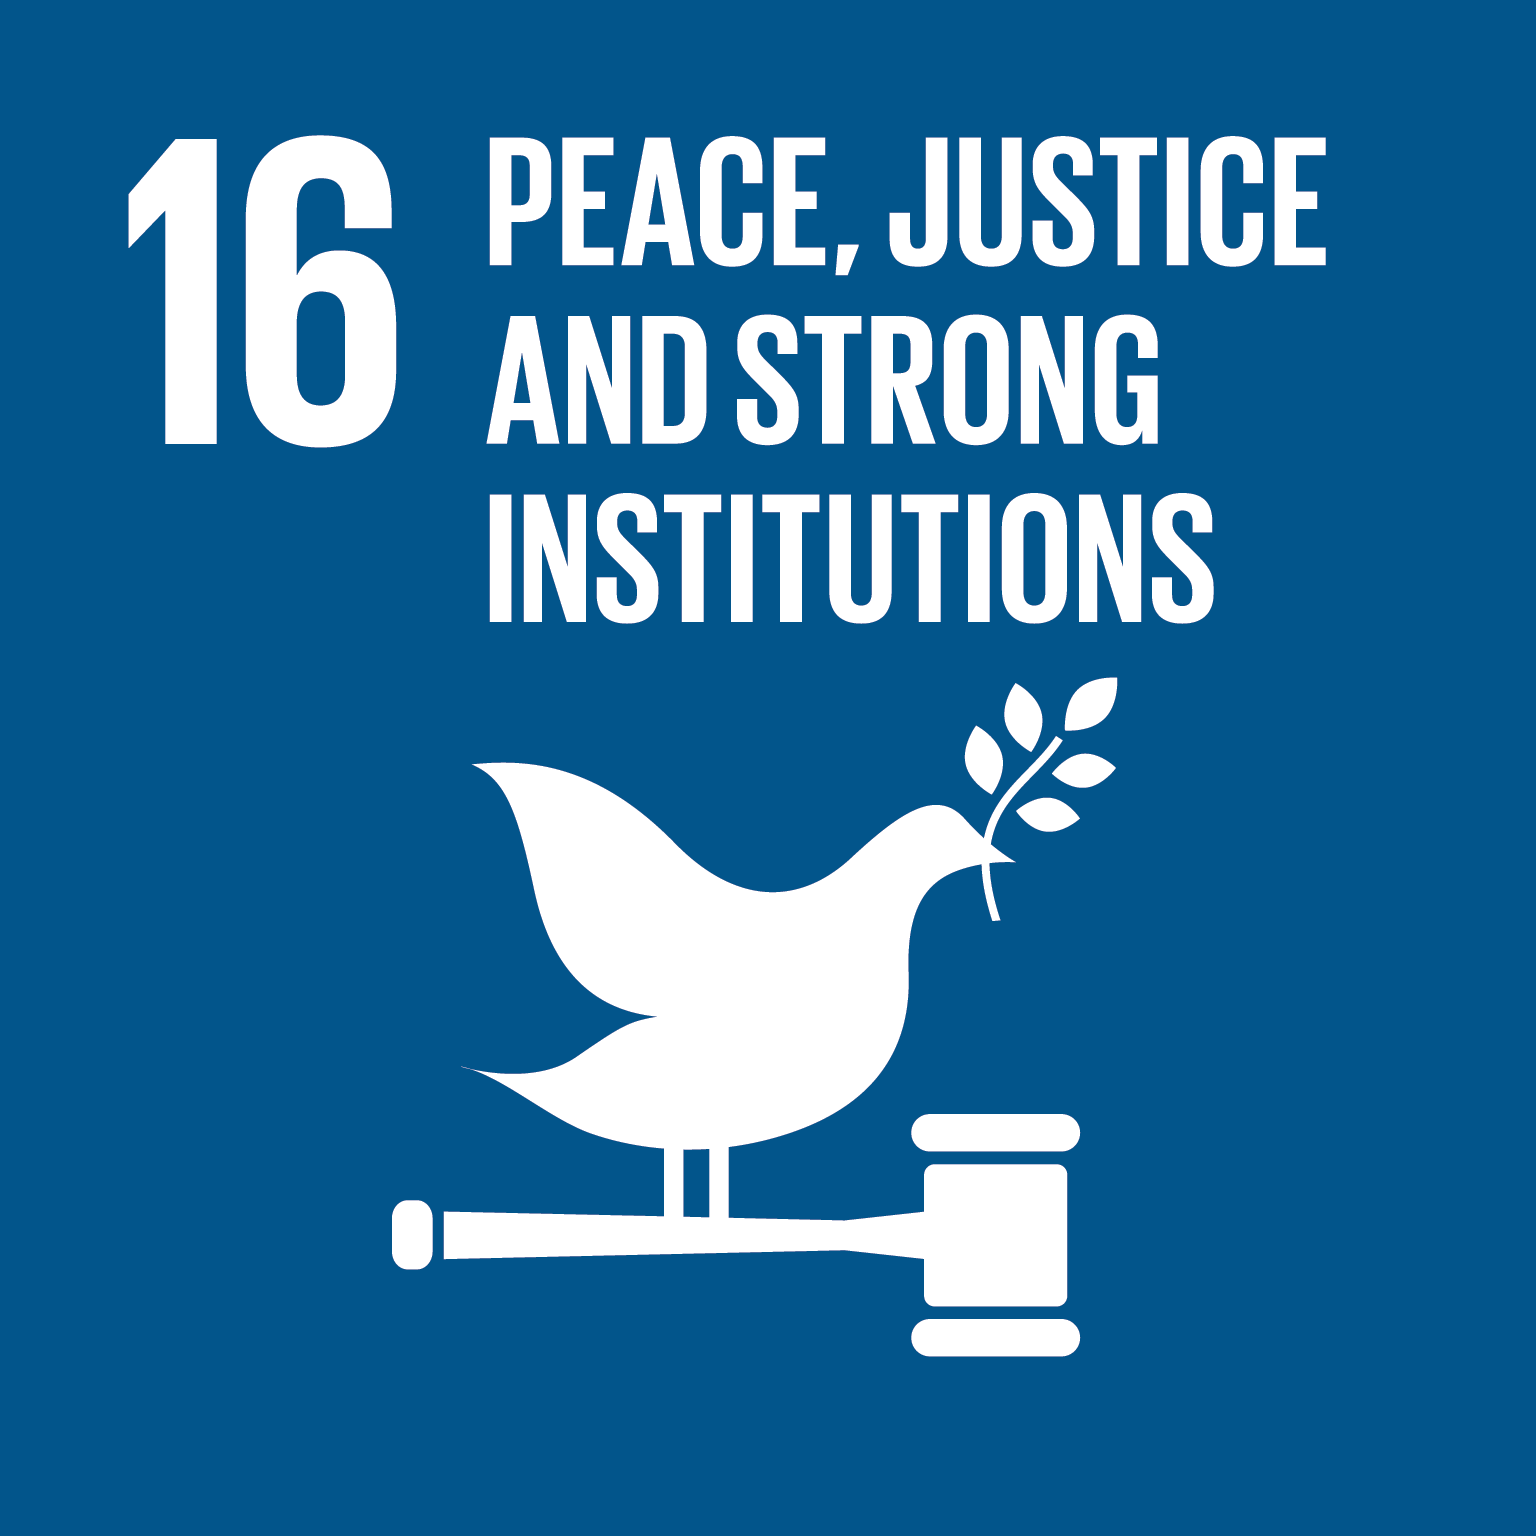 Peace, Justice and Strong Institutions - Promote just, peaceful and inclusive societies